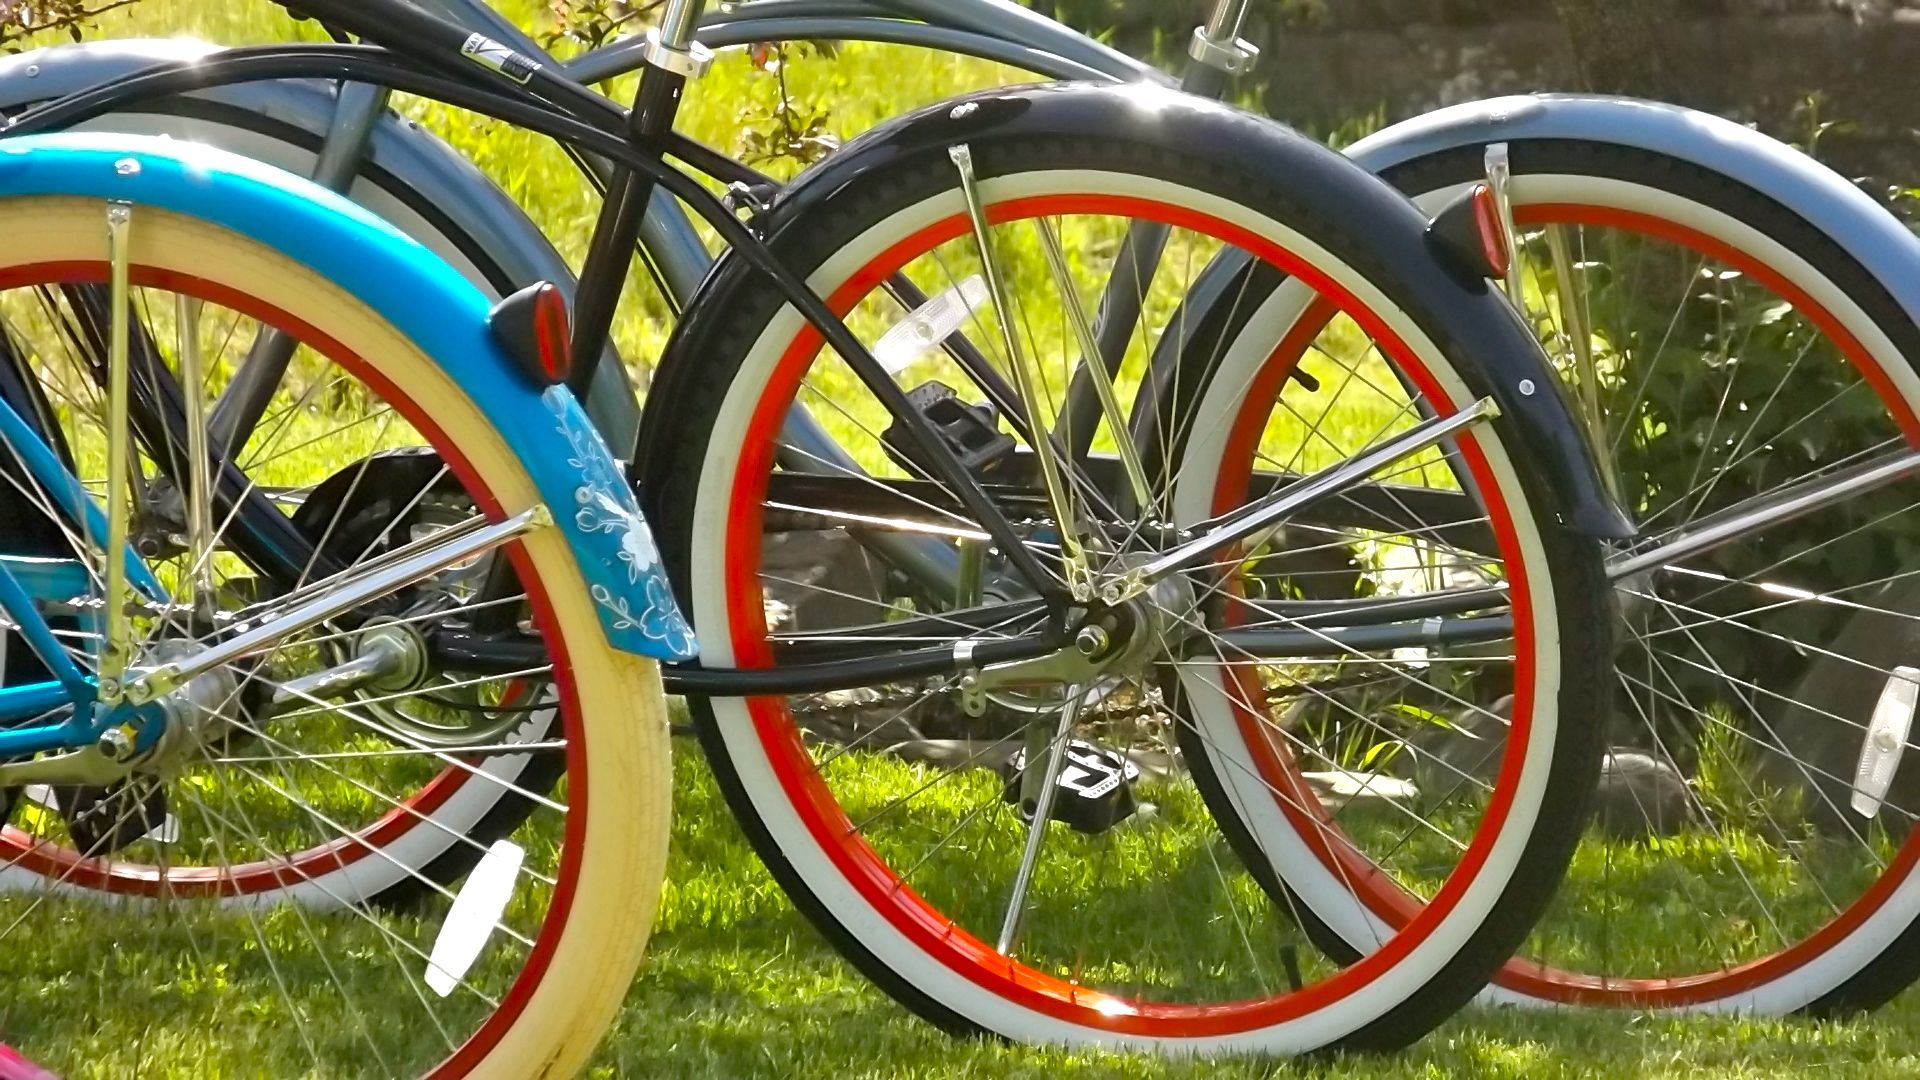 Colorful rides